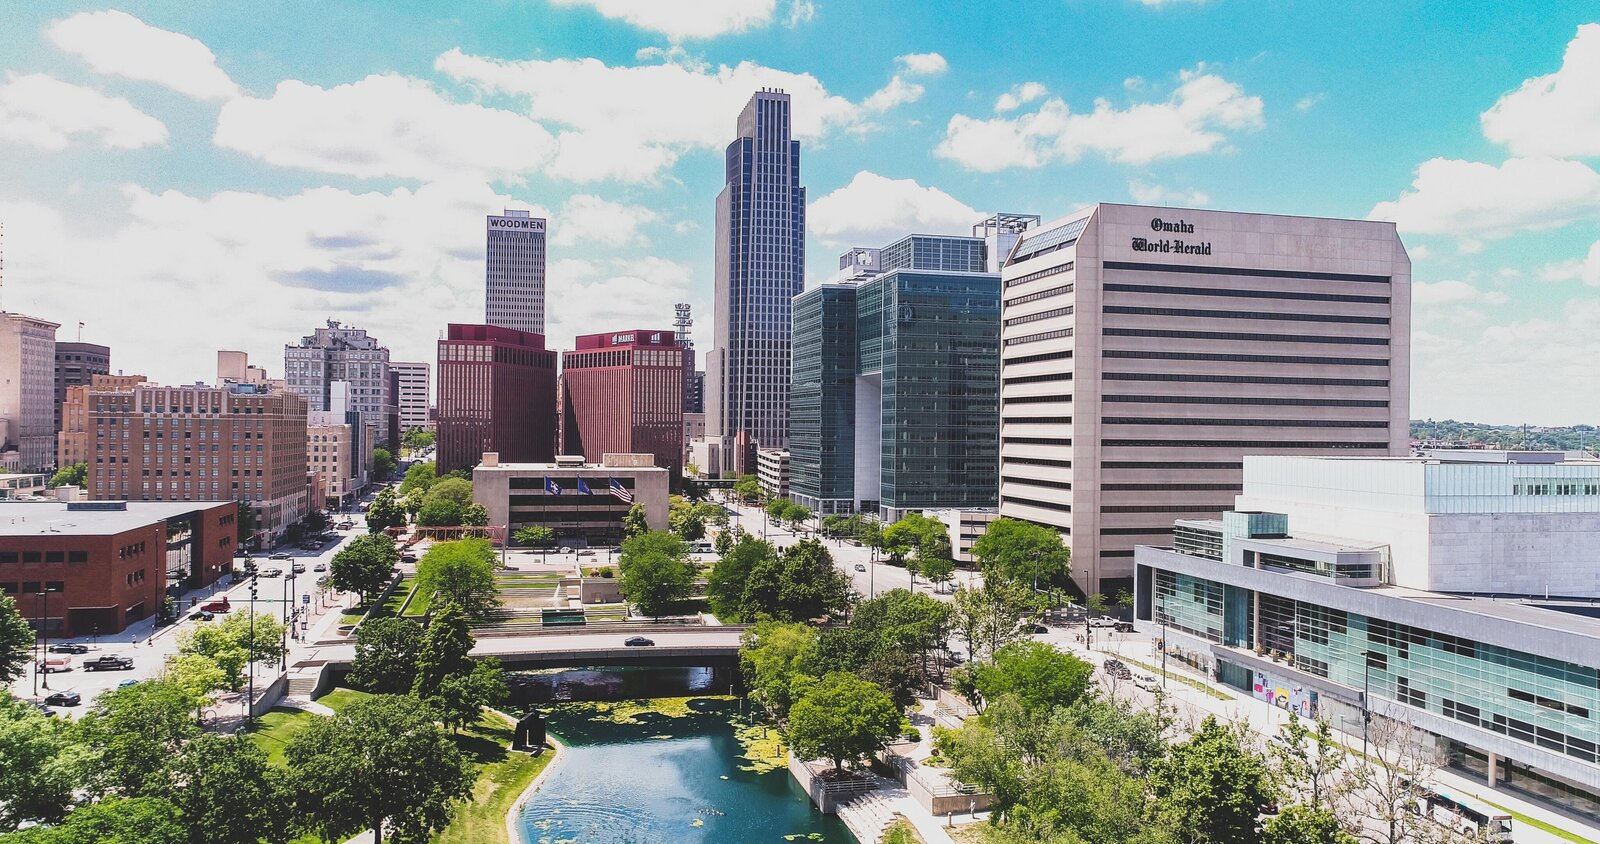 Tax Increment Financing has been used in busy areas of downtown Omaha, Nebraska. If it passes, Amendment 2 will refocus redevelopment on disadvantaged areas of the city and state, says Senator Justin Wayne.   Photo 8 of 10 in A State-by-State Guide to Housing Measures on the 2020 Ballot